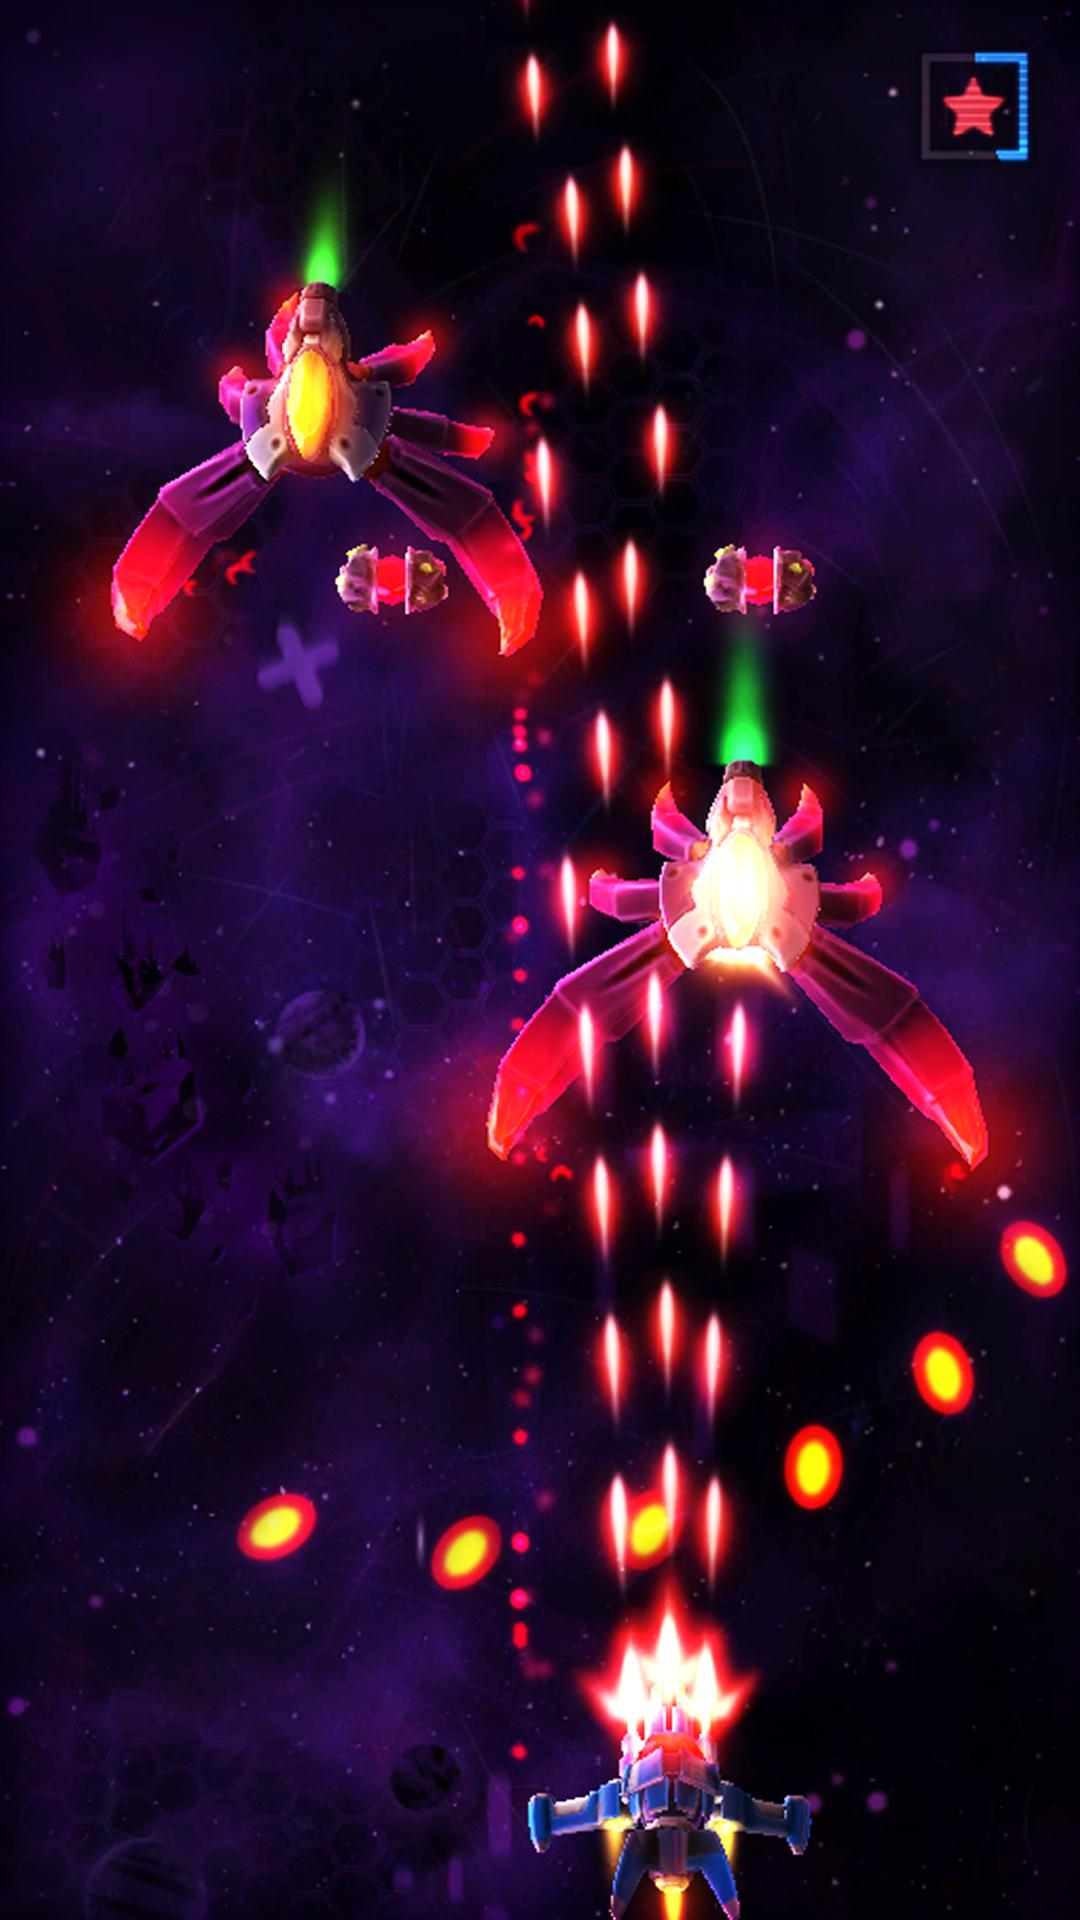 Neonverse Invaders Shoot 'Em Up: Galaxy Shooter für Android